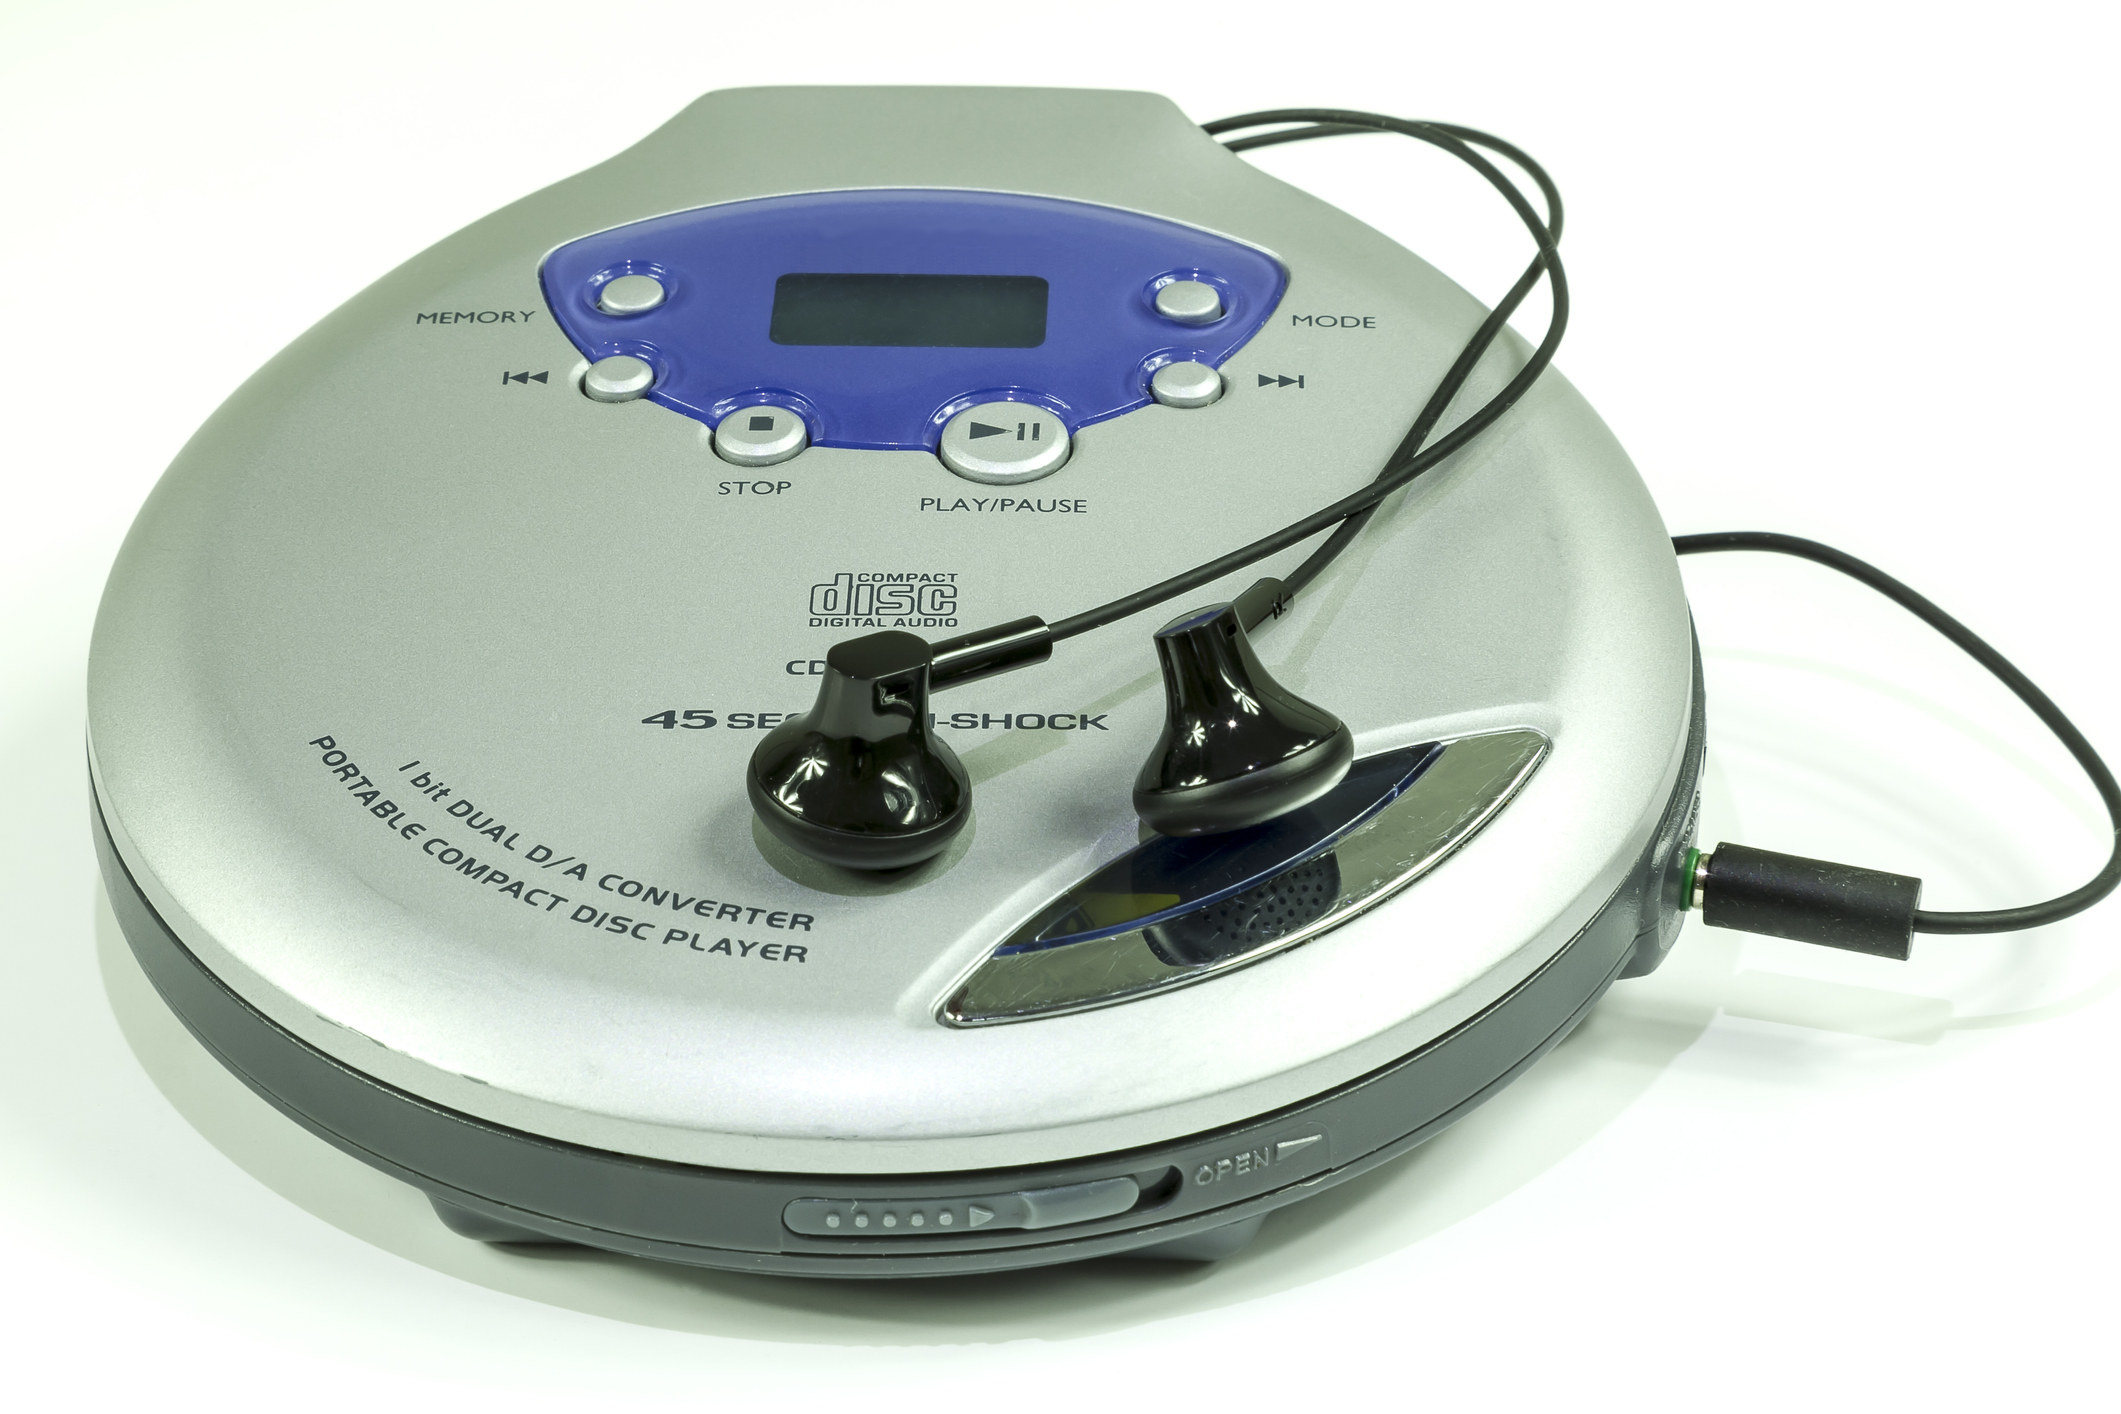 A stock image of a late '90s portable CD player